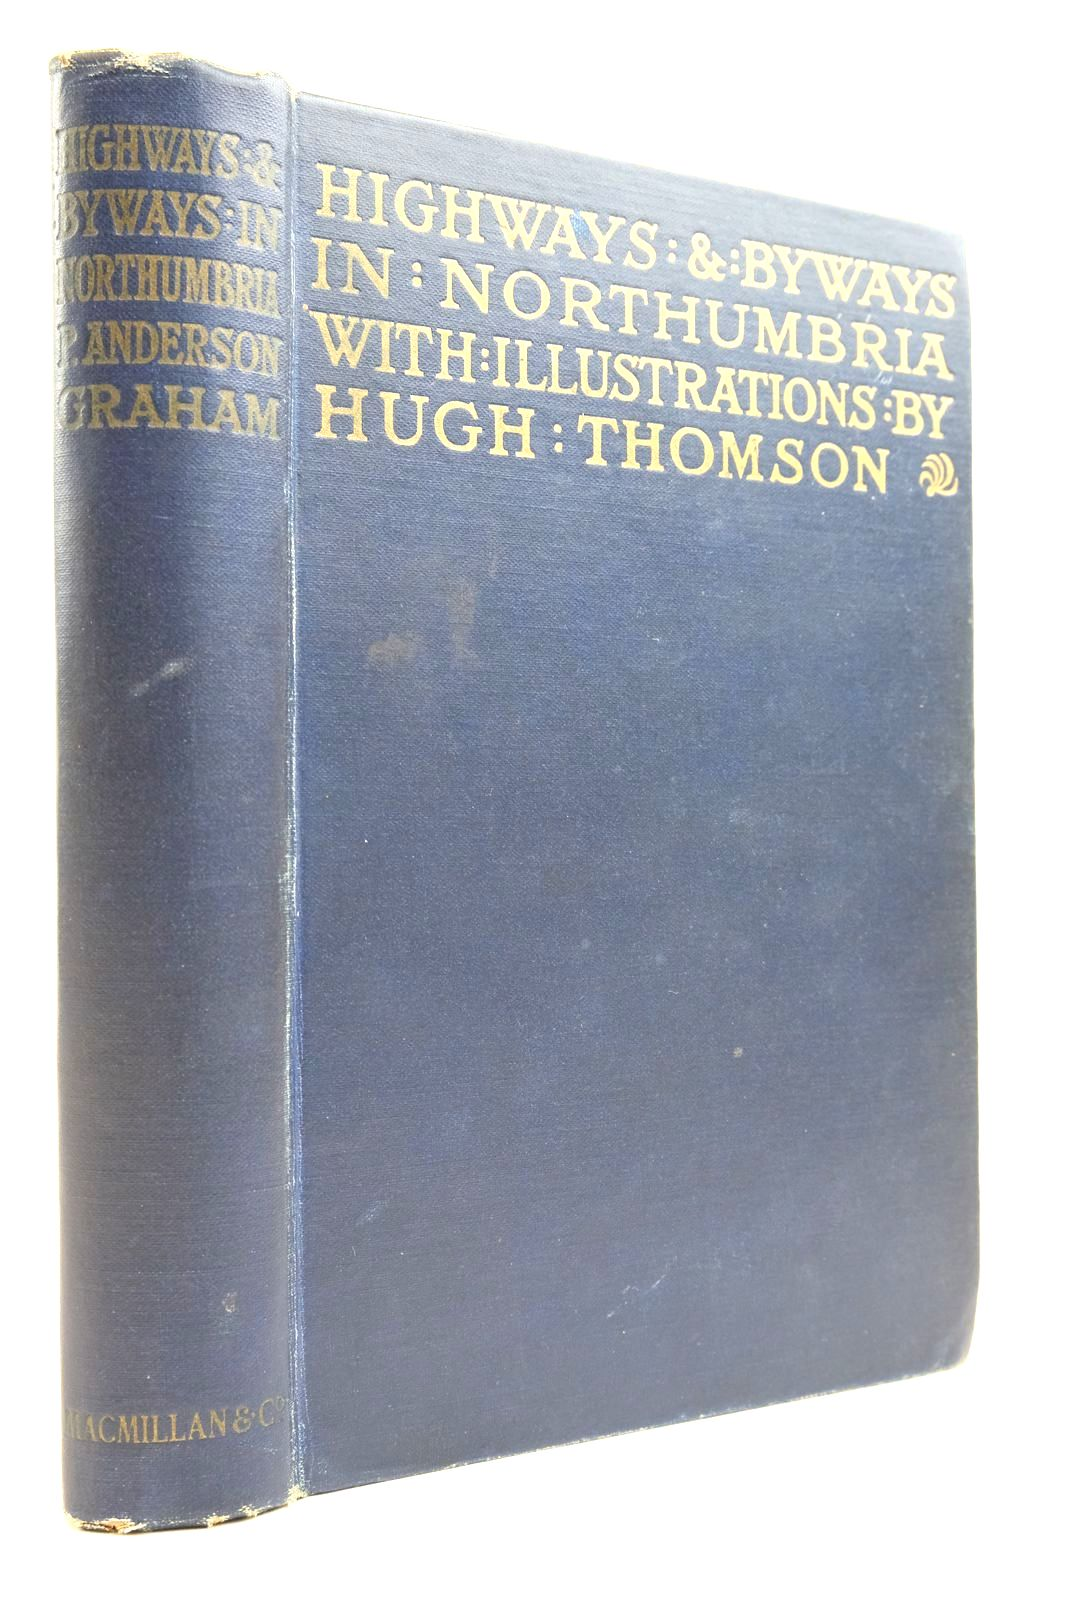 Photo of HIGHWAYS AND BYWAYS IN NORTHUMBRIA- Stock Number: 2134583